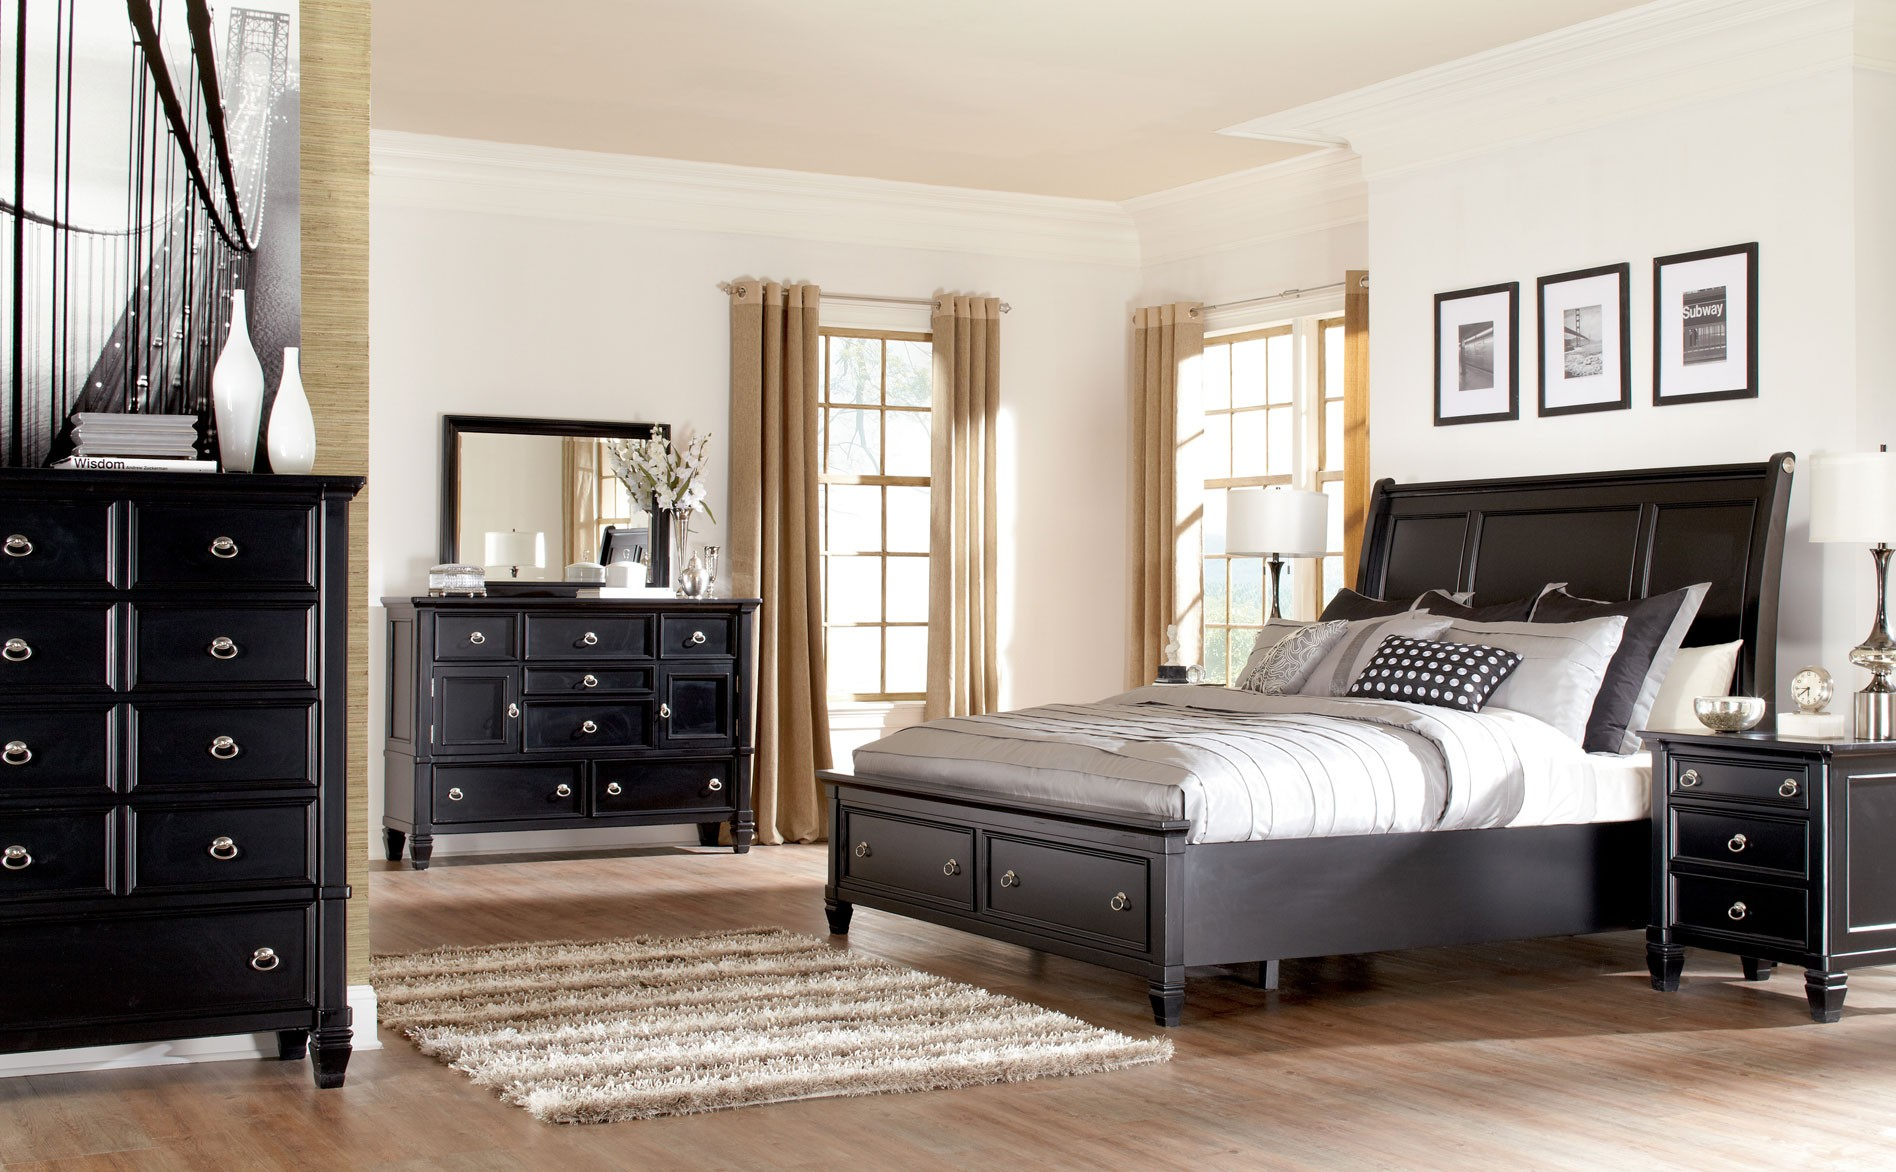 Exciting ashley furniture fresno for home furniture with ashley furniture fresno ca